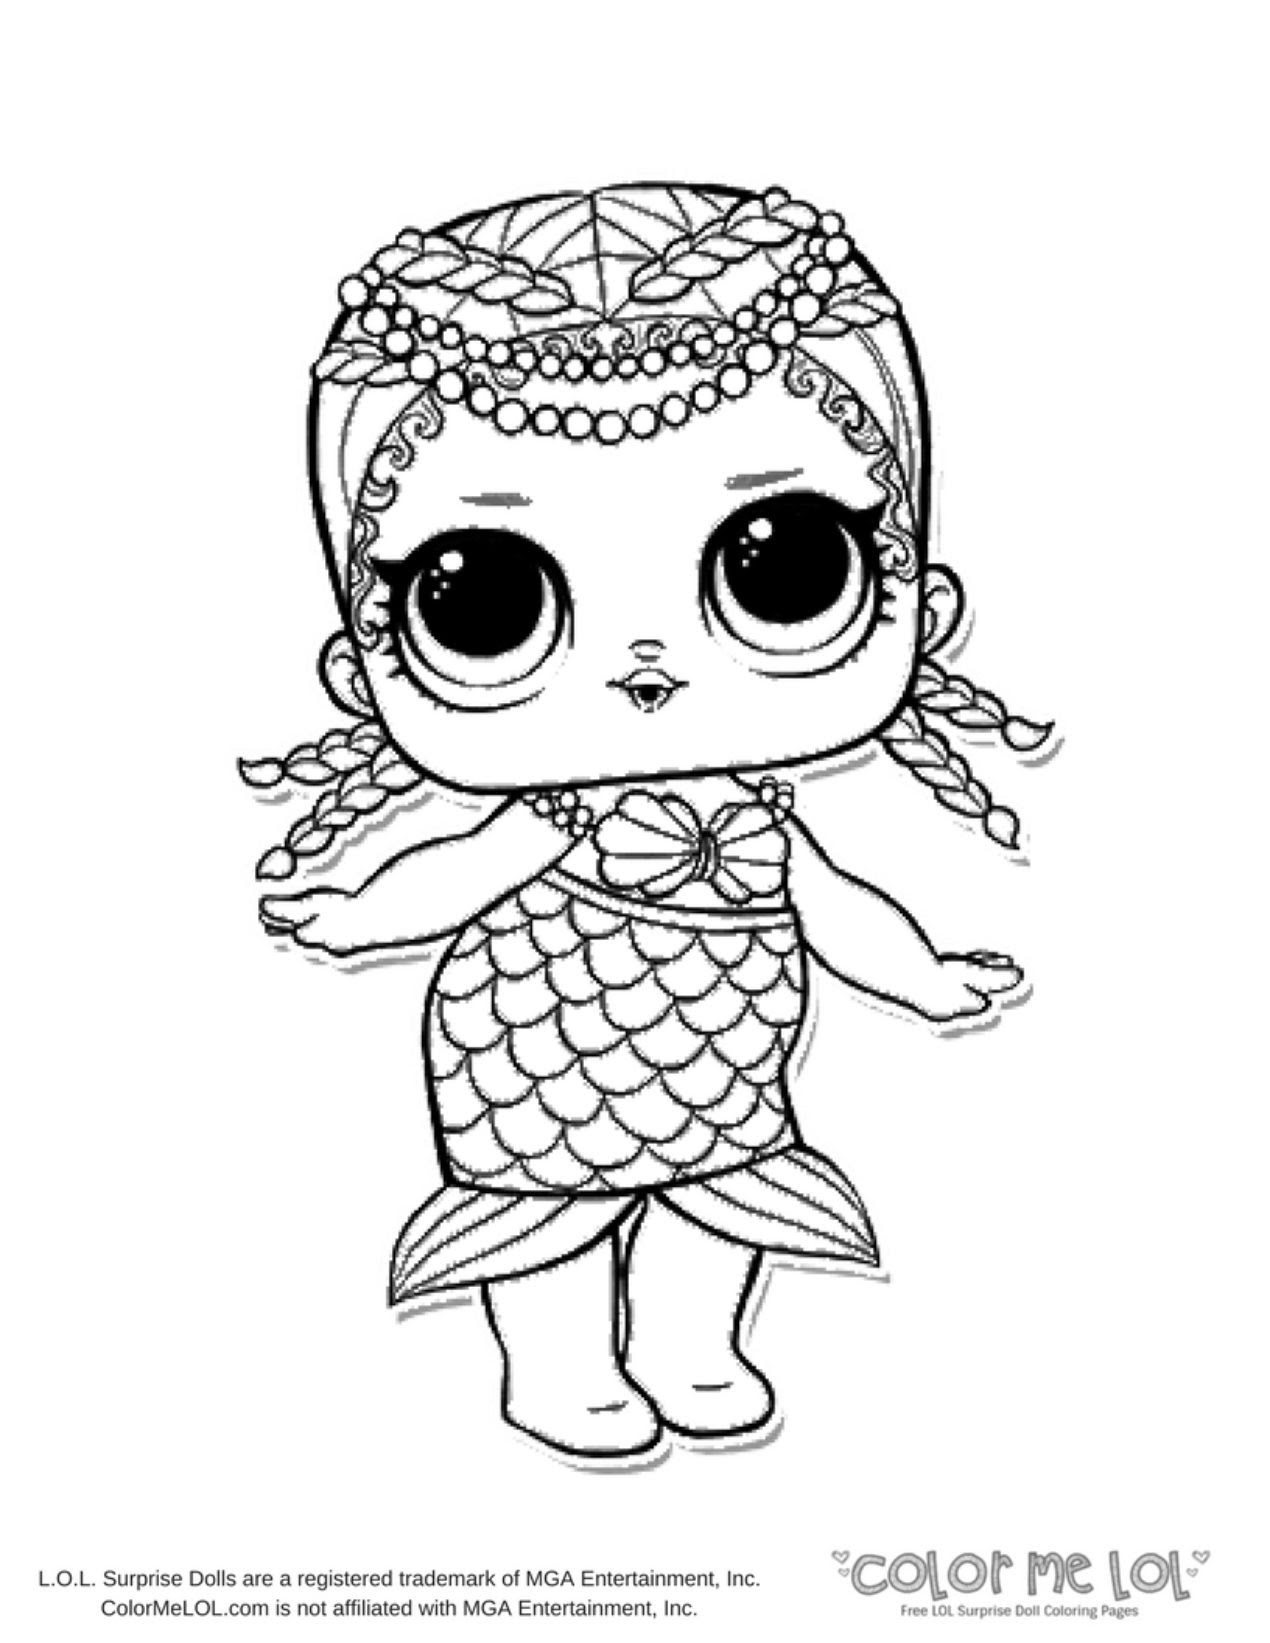 Coloring pages kids: Lol Surprise Coloring Sheet